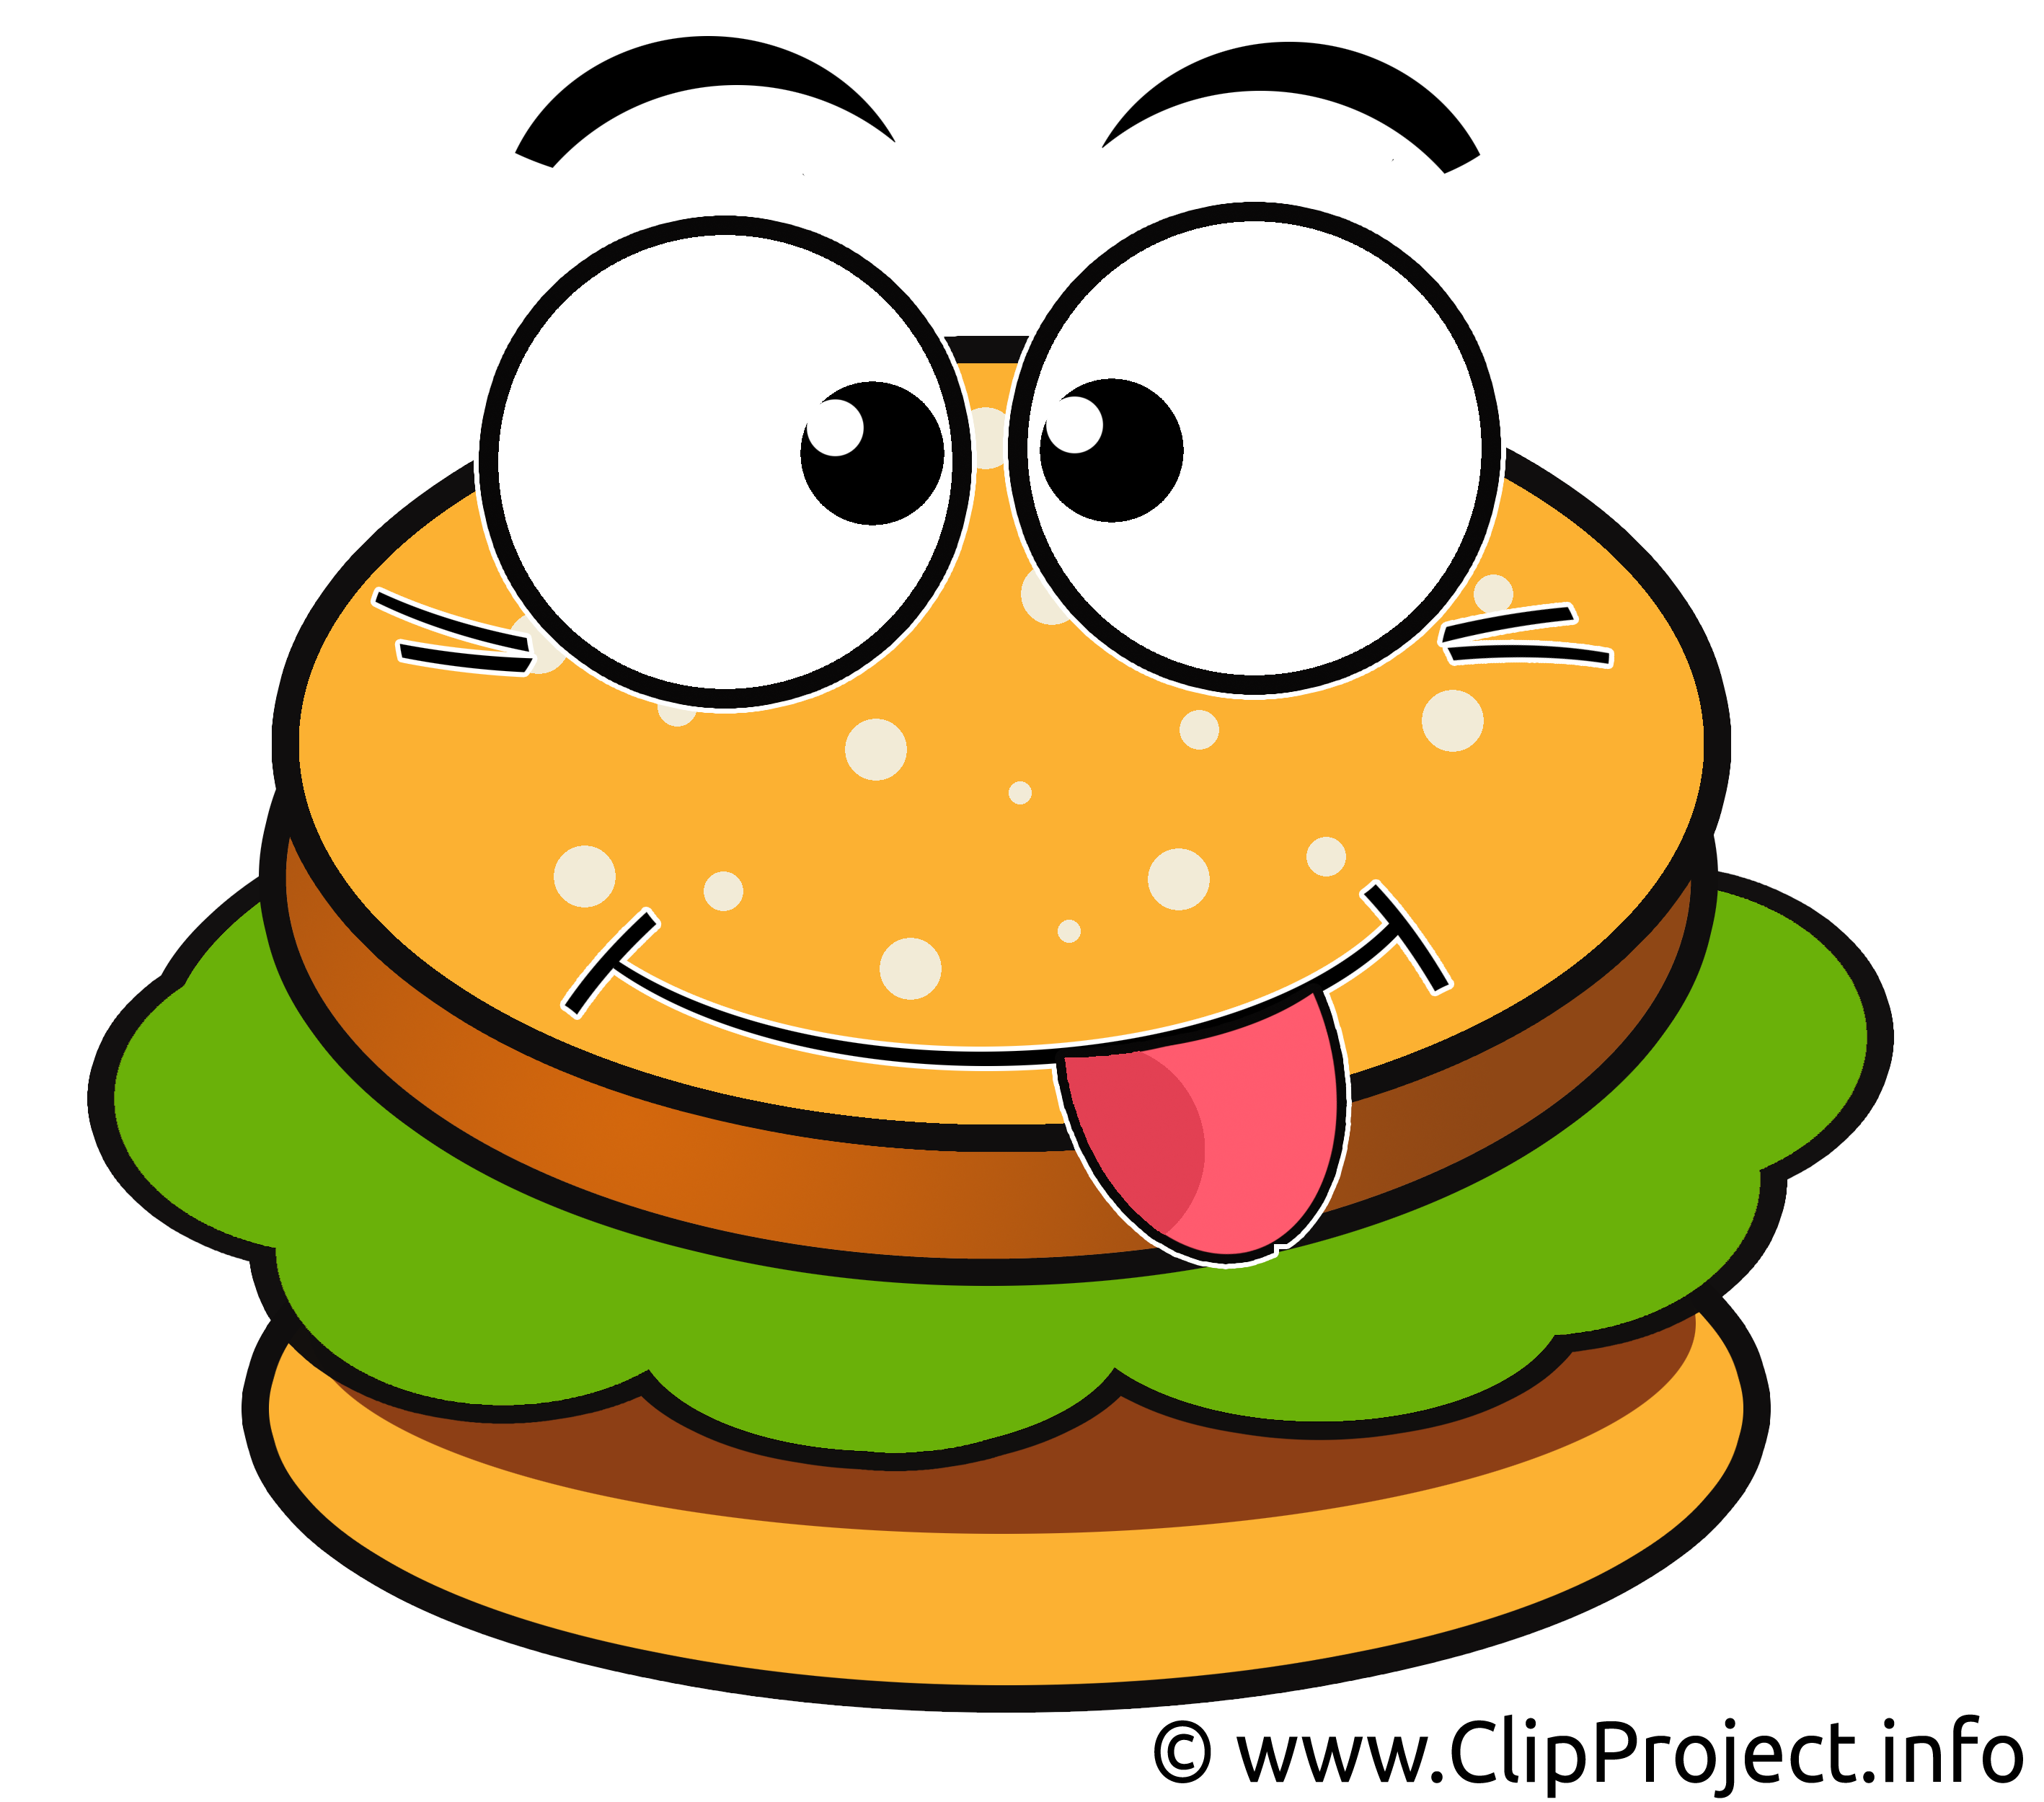 Hamburger svg comic. Burger clipart cartoon pencil